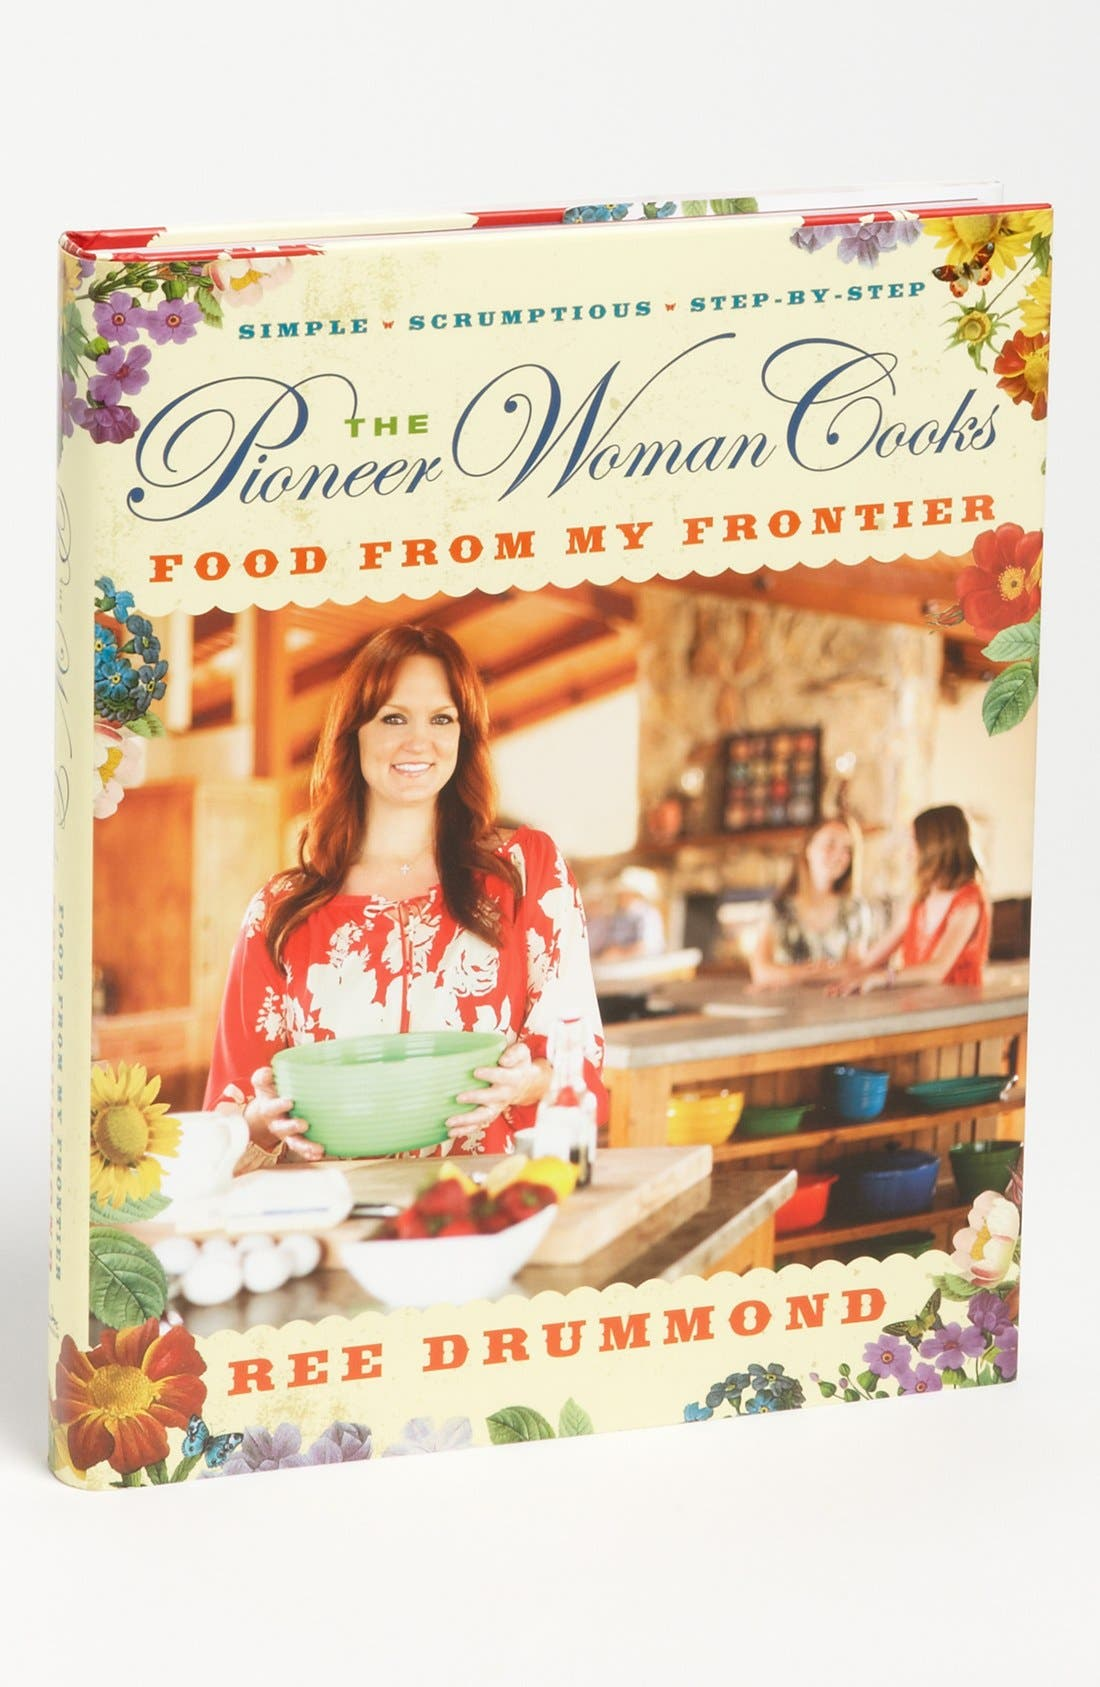 Alternate Image 1 Selected - 'The Pioneer Woman Cooks: Food from My Frontier' Cookbook